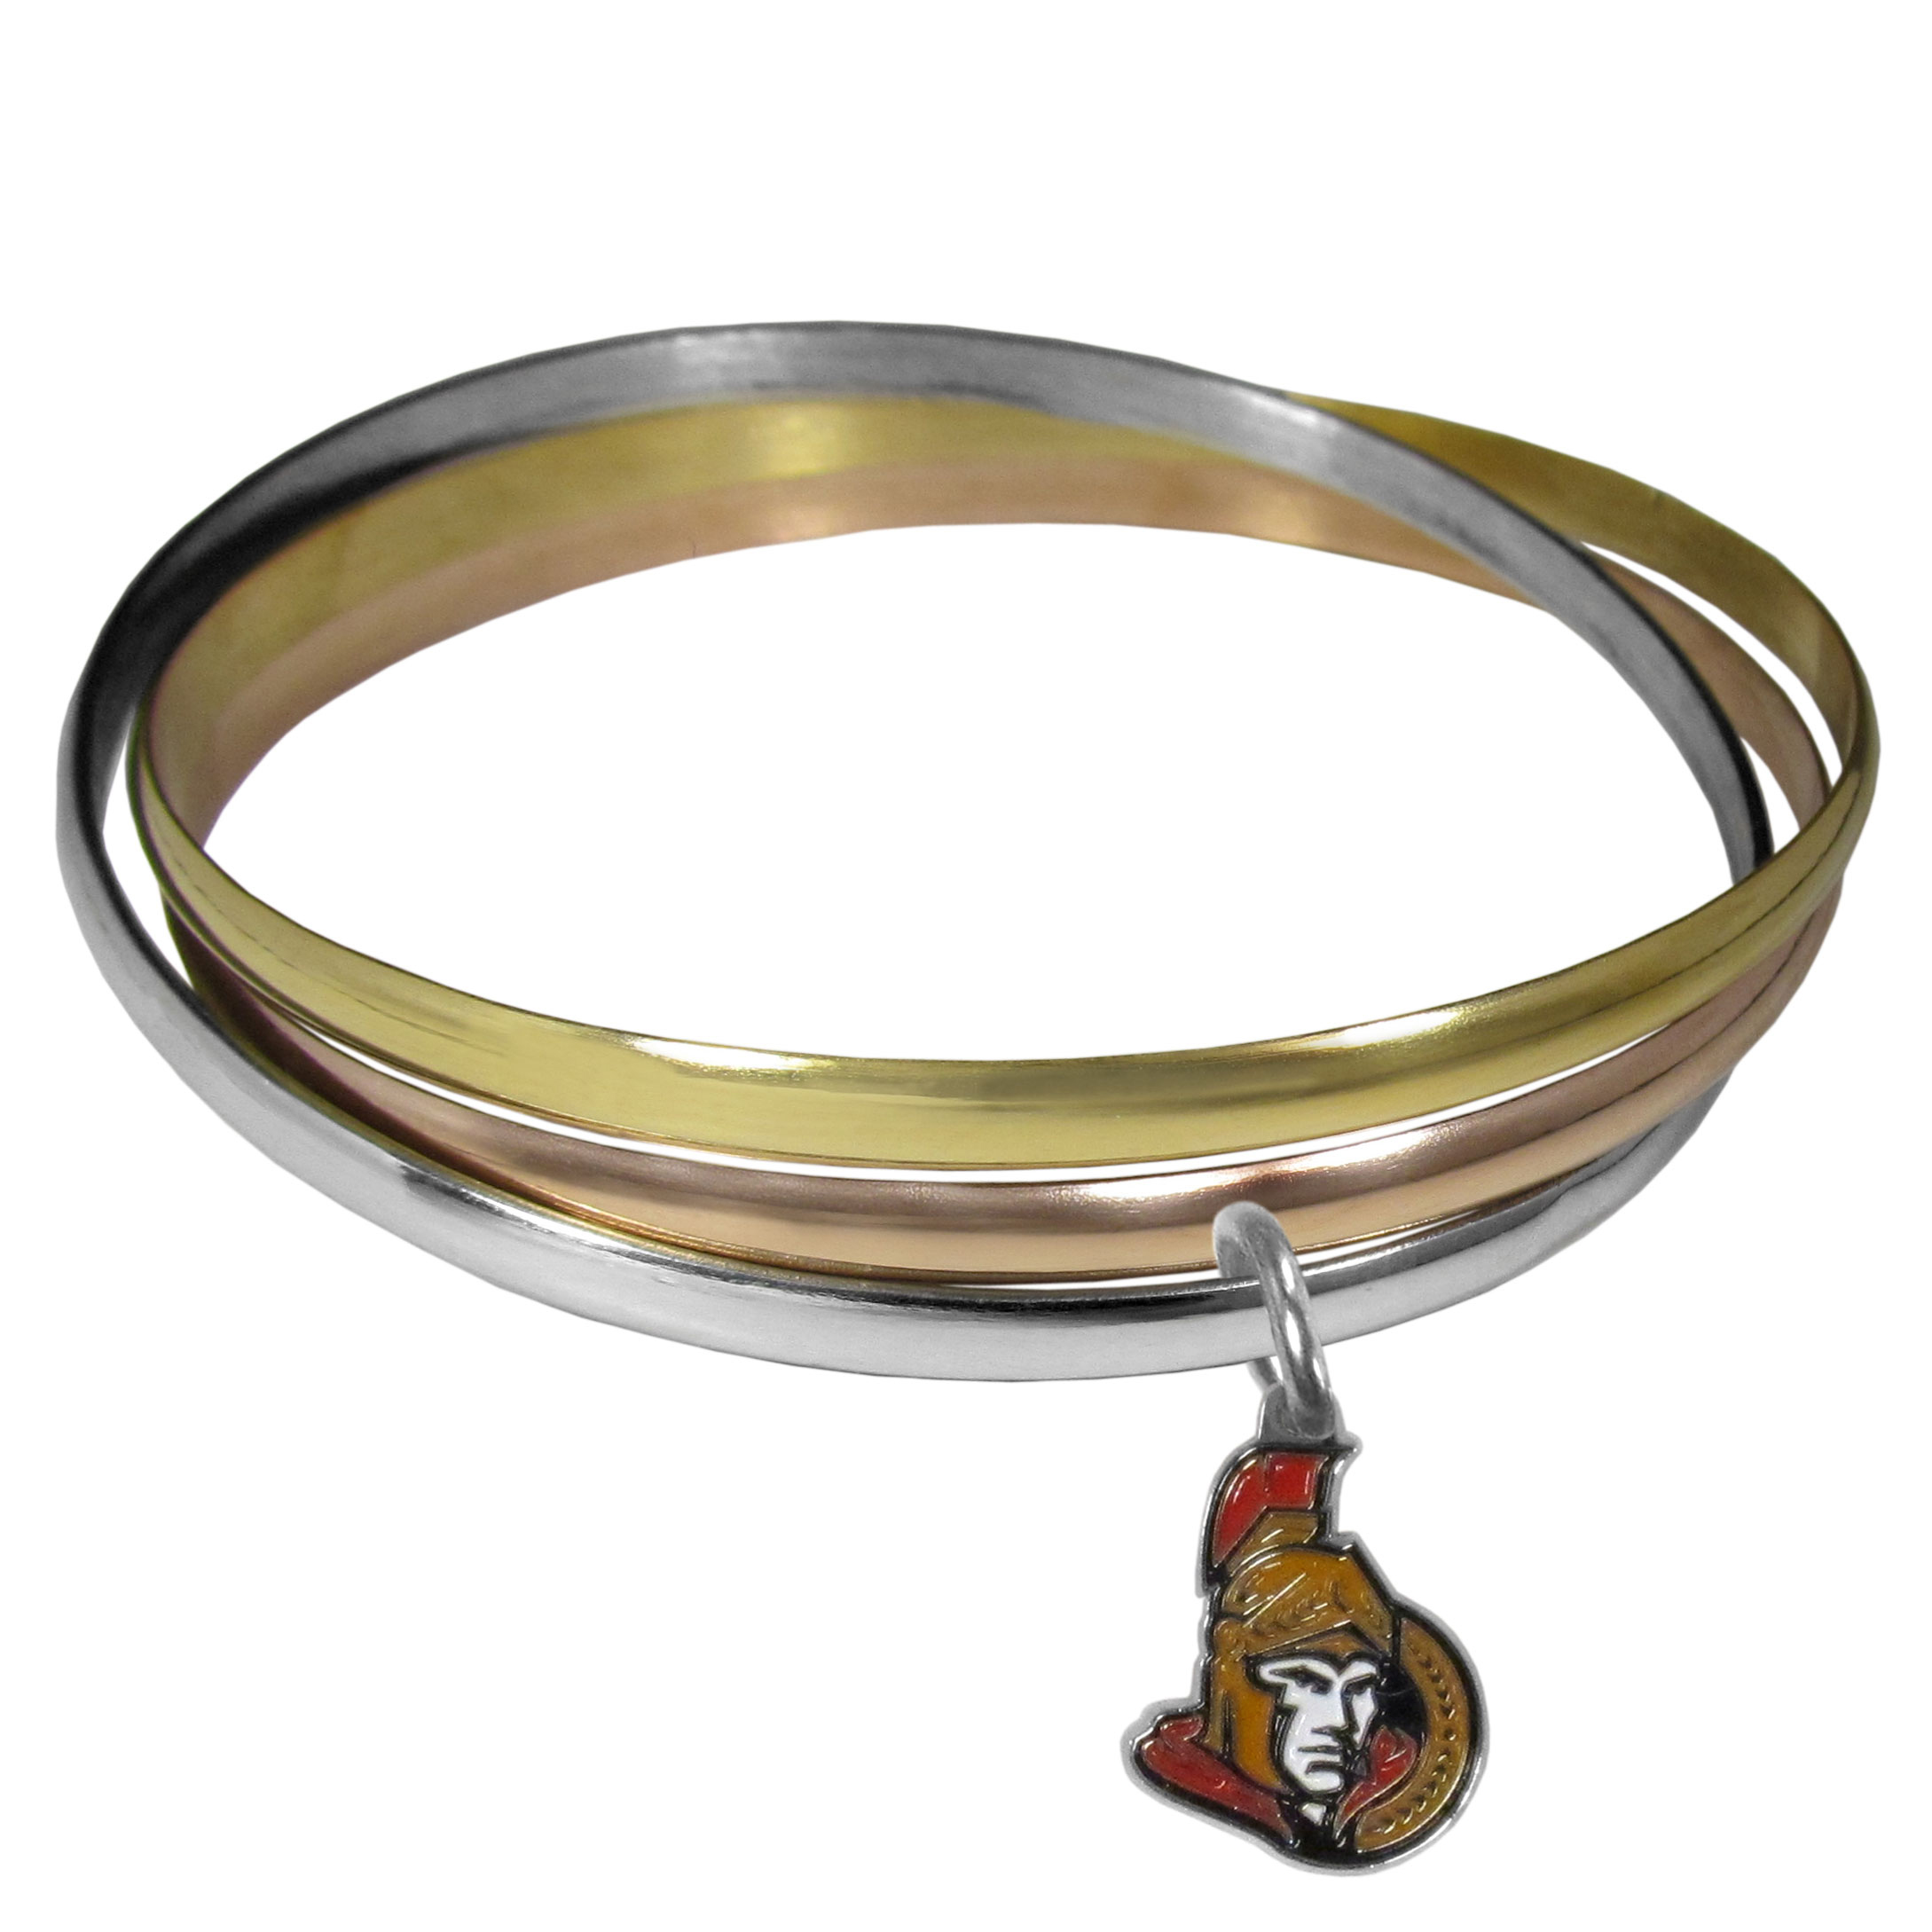 Ottawa Senators® Tri-color Bangle Bracelet - These beautiful bangles come in a interlocking style and feature a fully cast Ottawa Senators® charm with enameled team colors. The bracelet has a silver toned bangle, gold tone bangle and brass toned bangle.